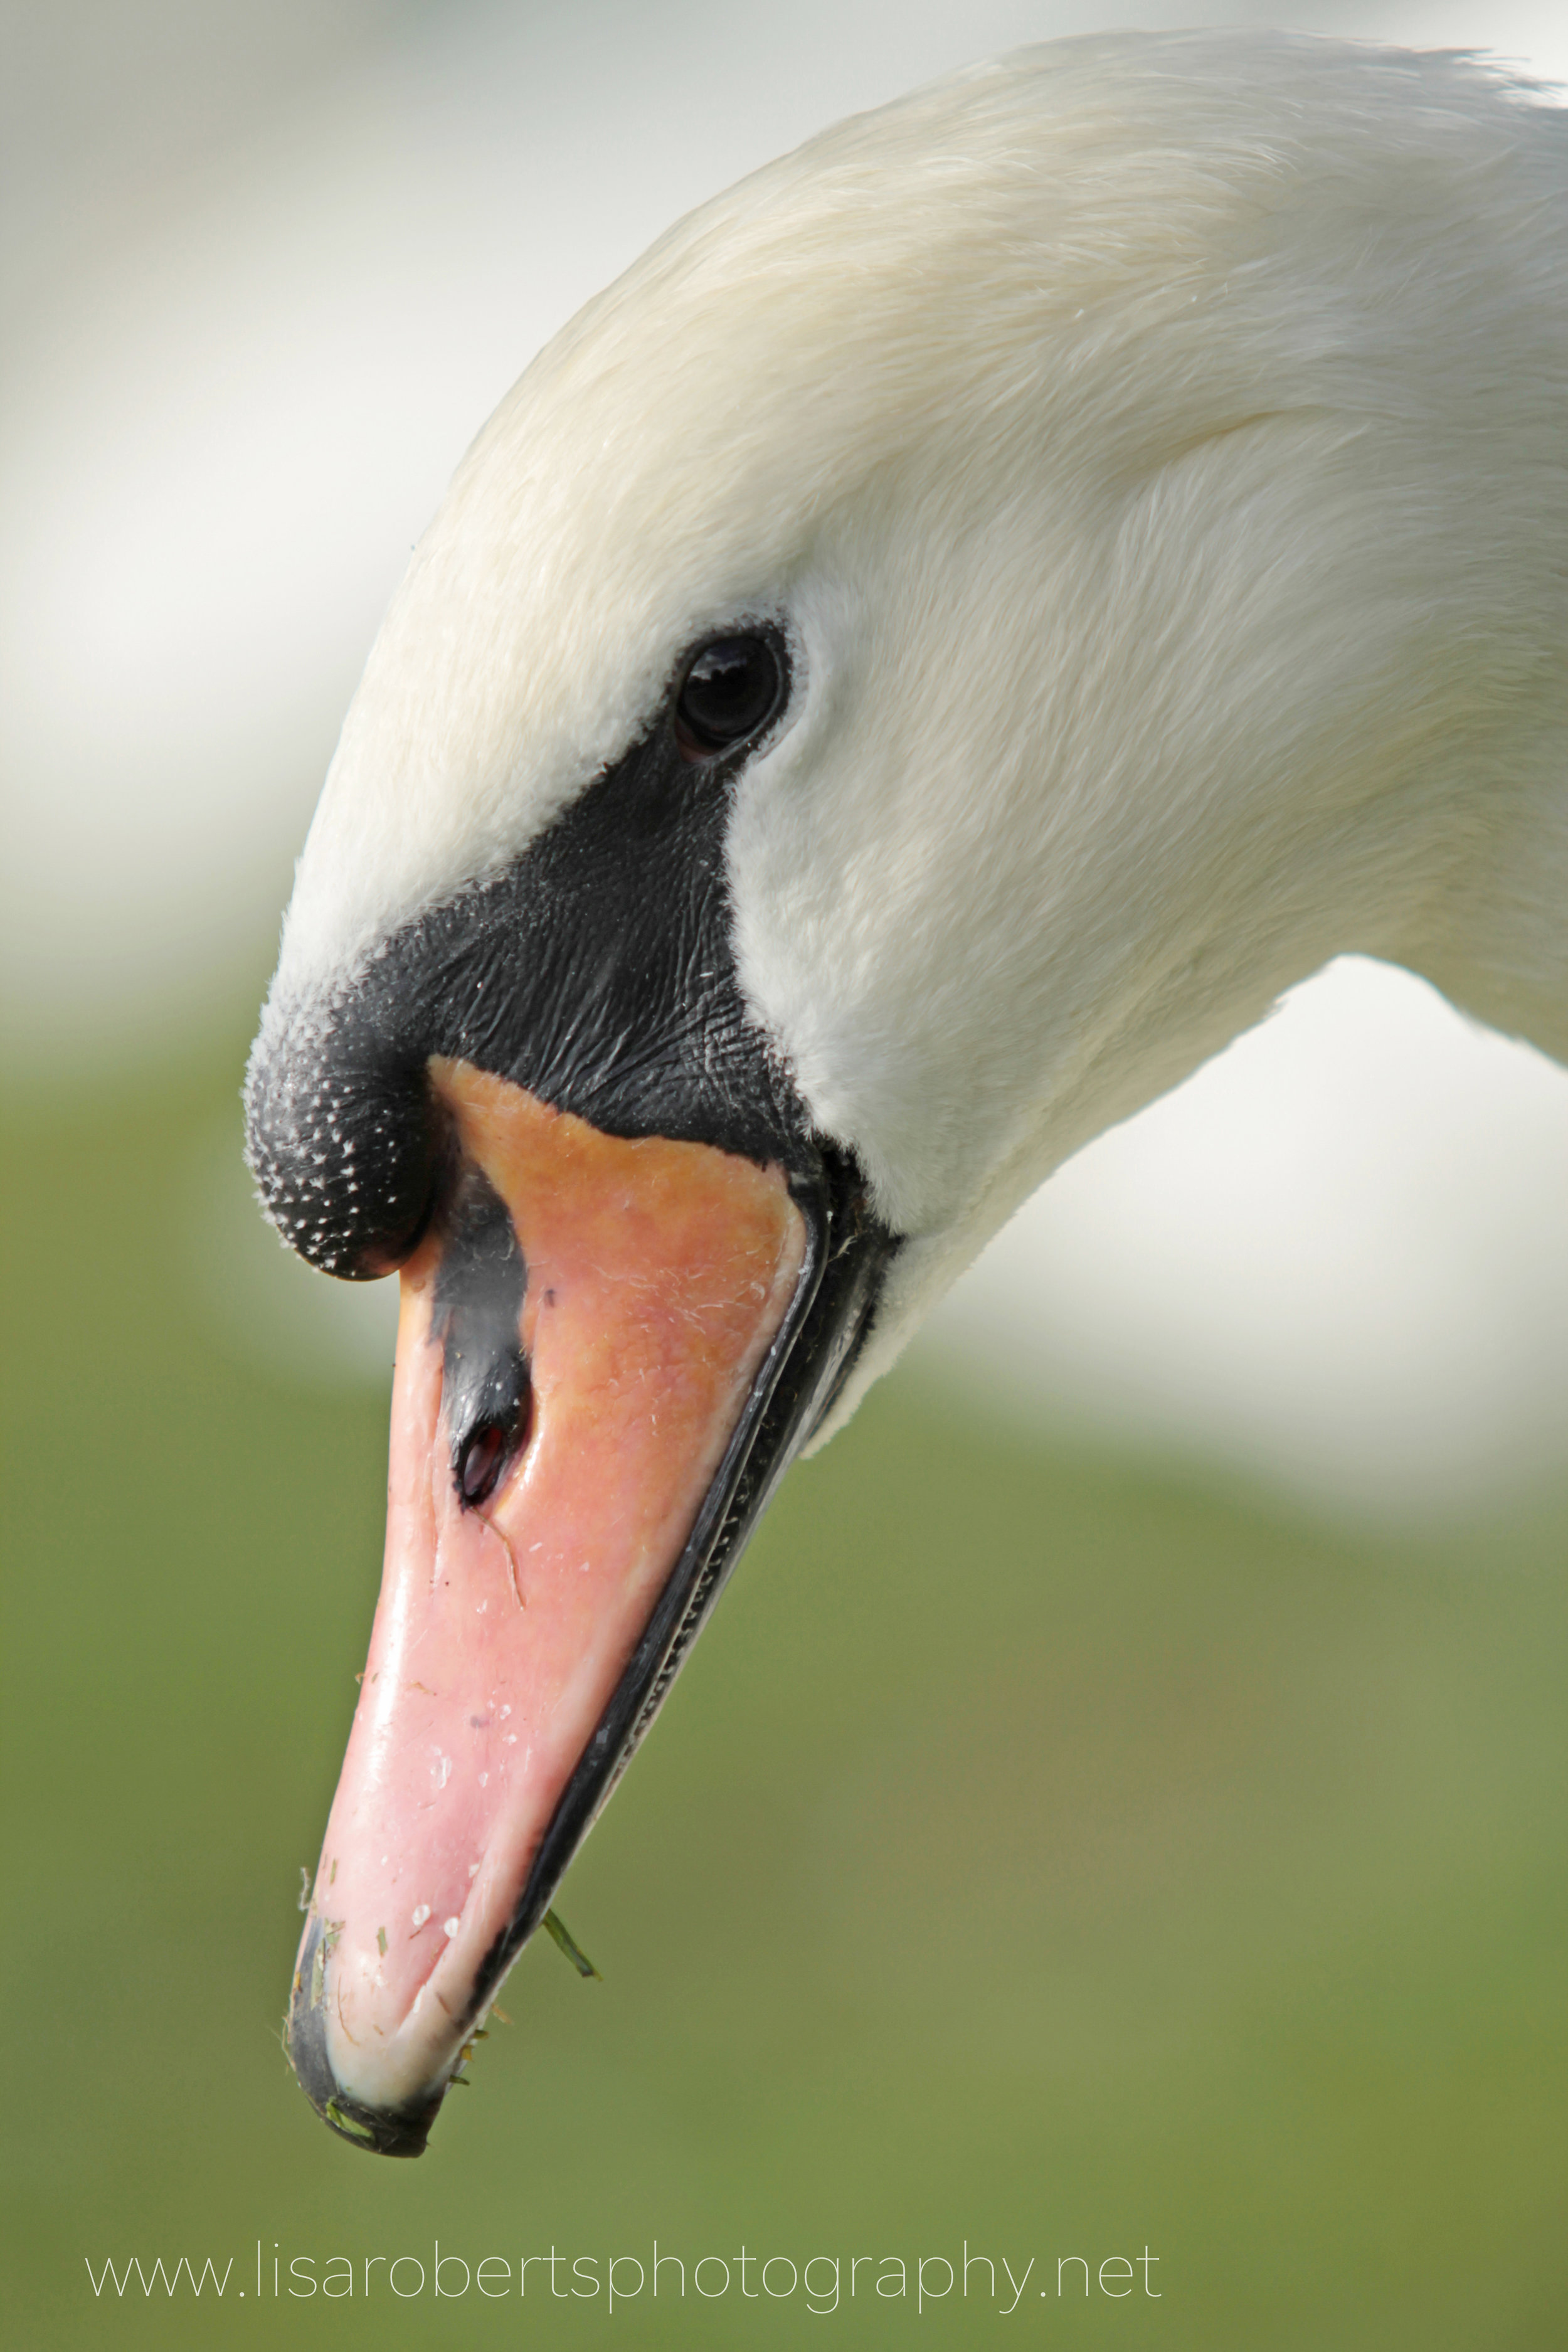 Female Swan, up close